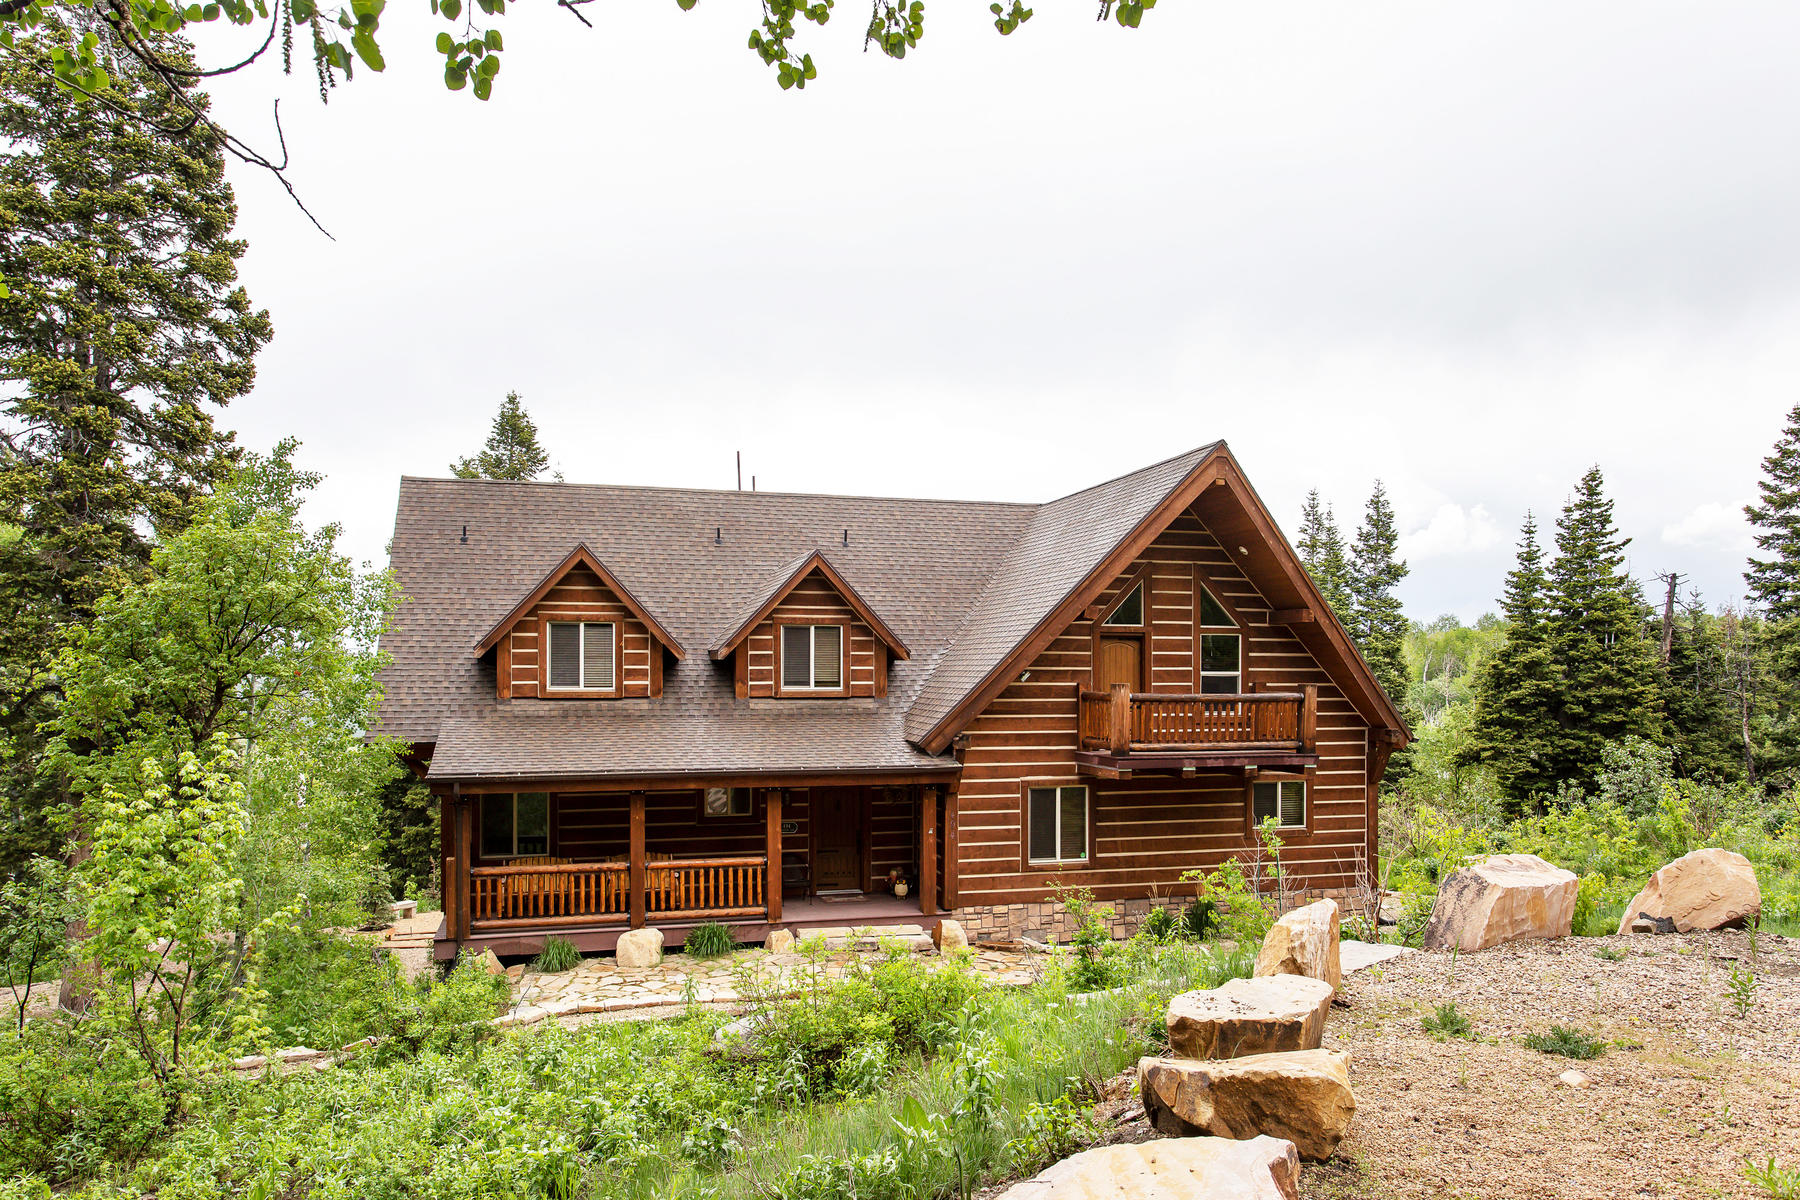 Single Family Homes for Active at Your Mountain Lodge Awaits 494 W Forgotten Lane Wanship, Utah 84017 United States